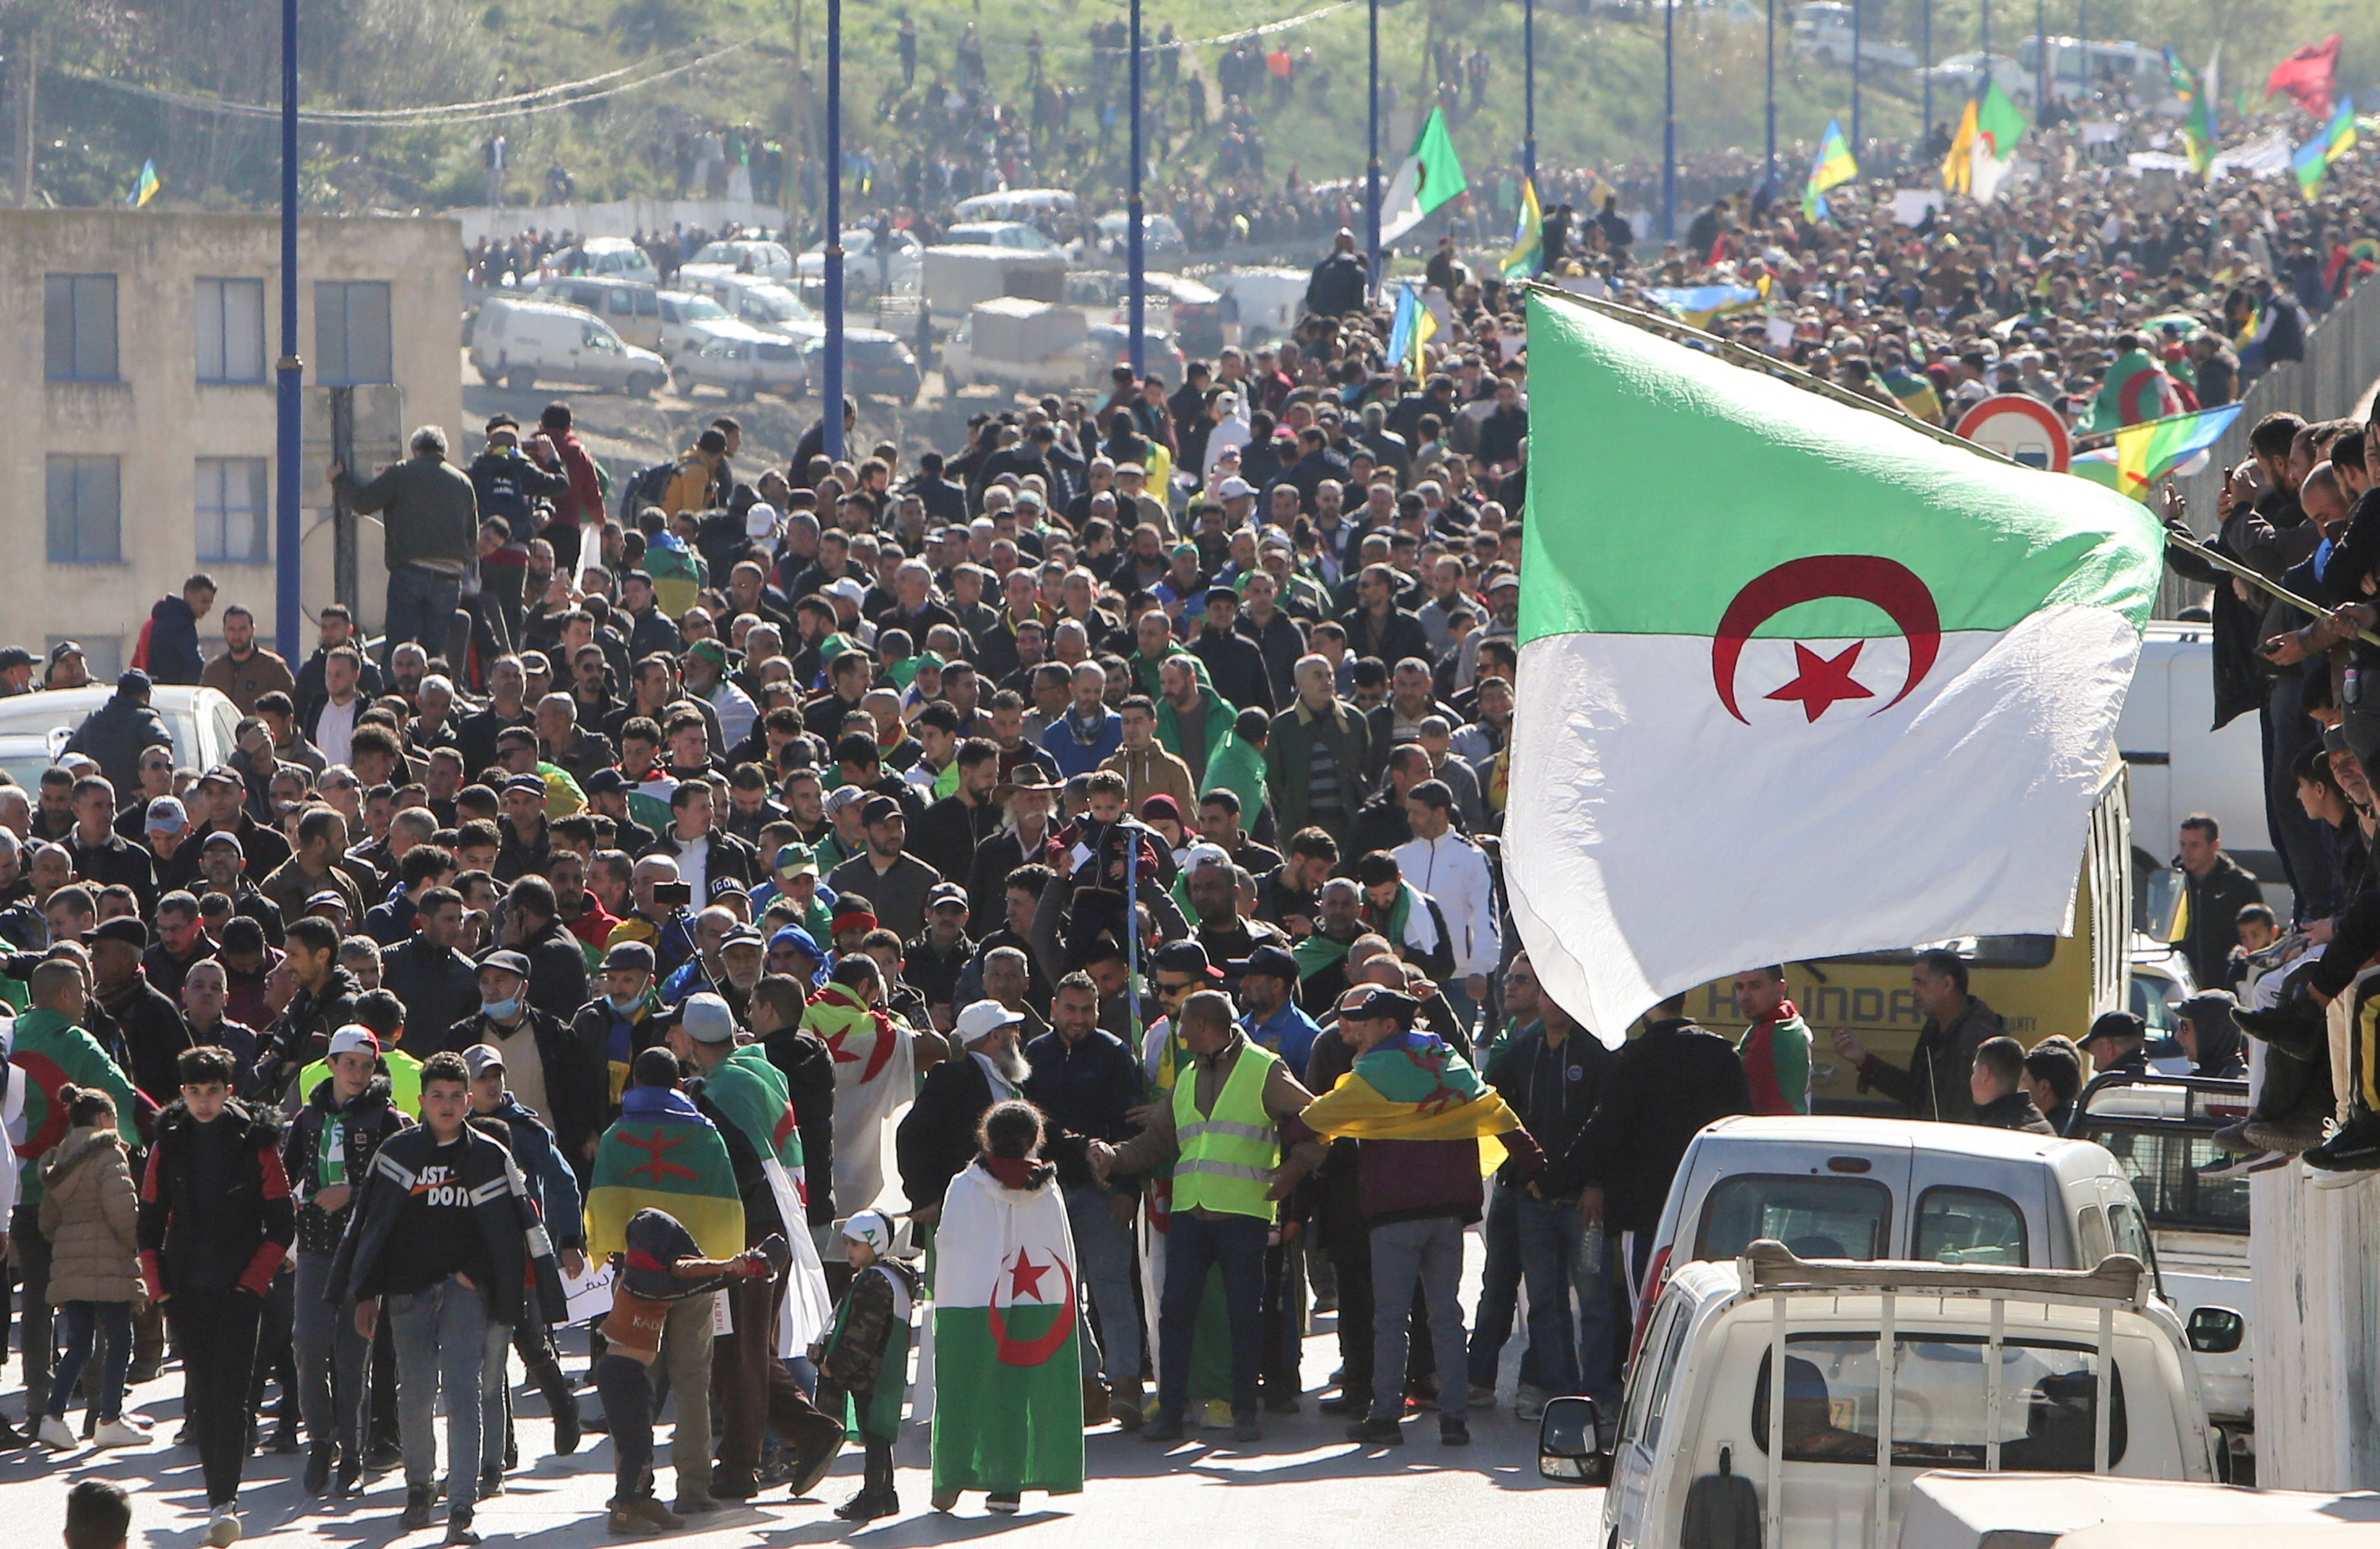 Demonstrators carry national flags as they gather in the town of Kherrata, marking two years since the start of a mass protest movement there demanding political change, Algeria February 16, 2021. REUTERS/Ramzi Boudina